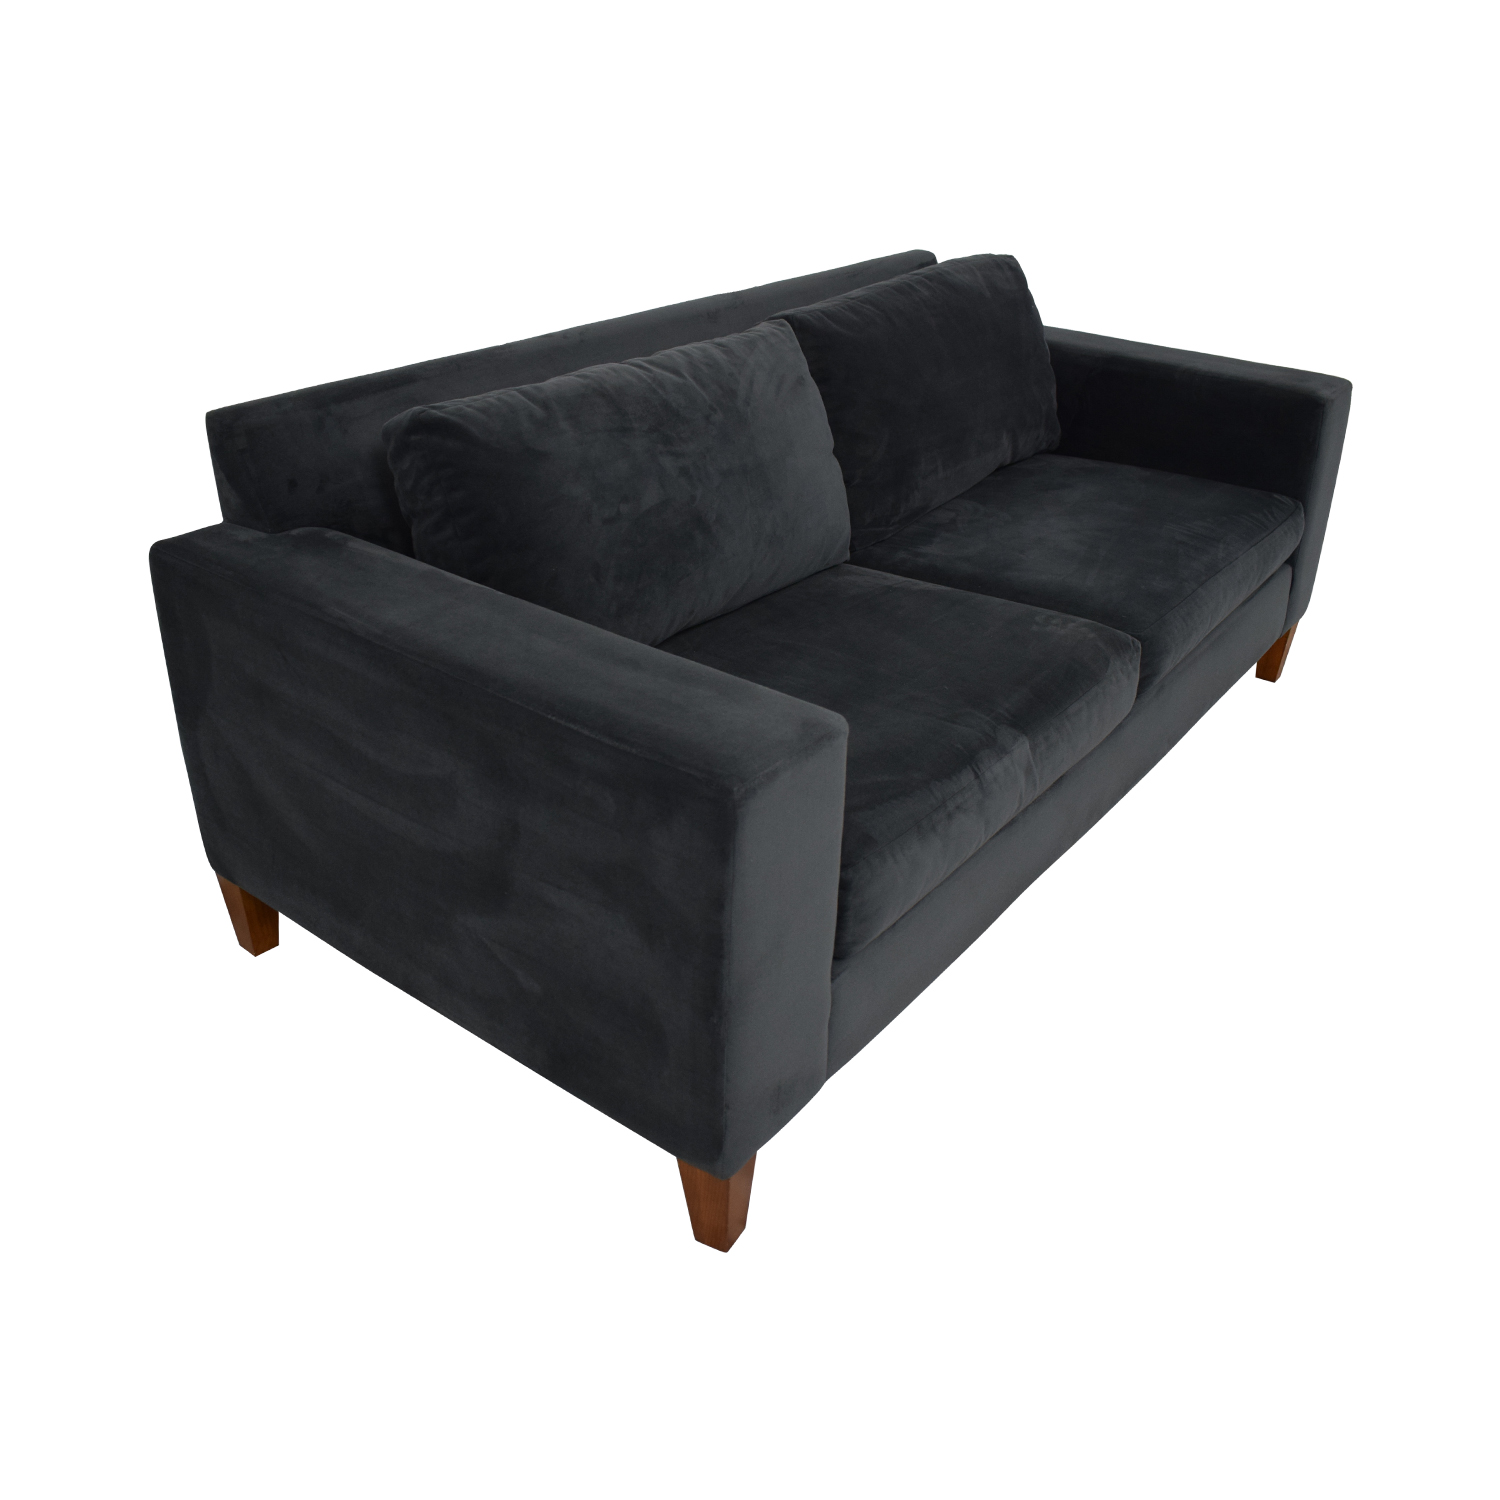 buy West Elm York Sofa West Elm Sofas